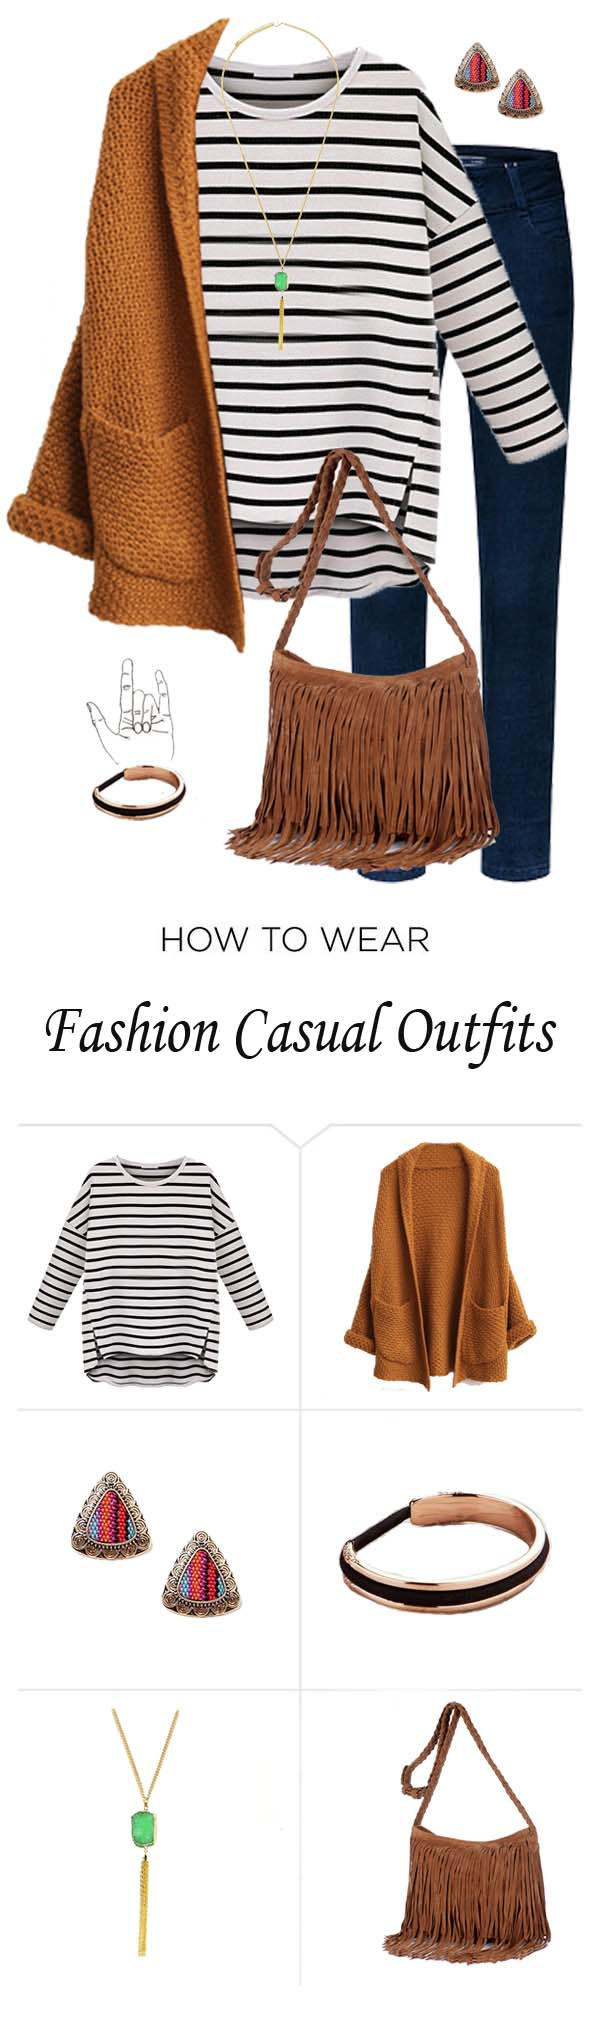 Outfit ideas with cardigans we have collected for every women to give you inspirations what and how to wear your cardigans.